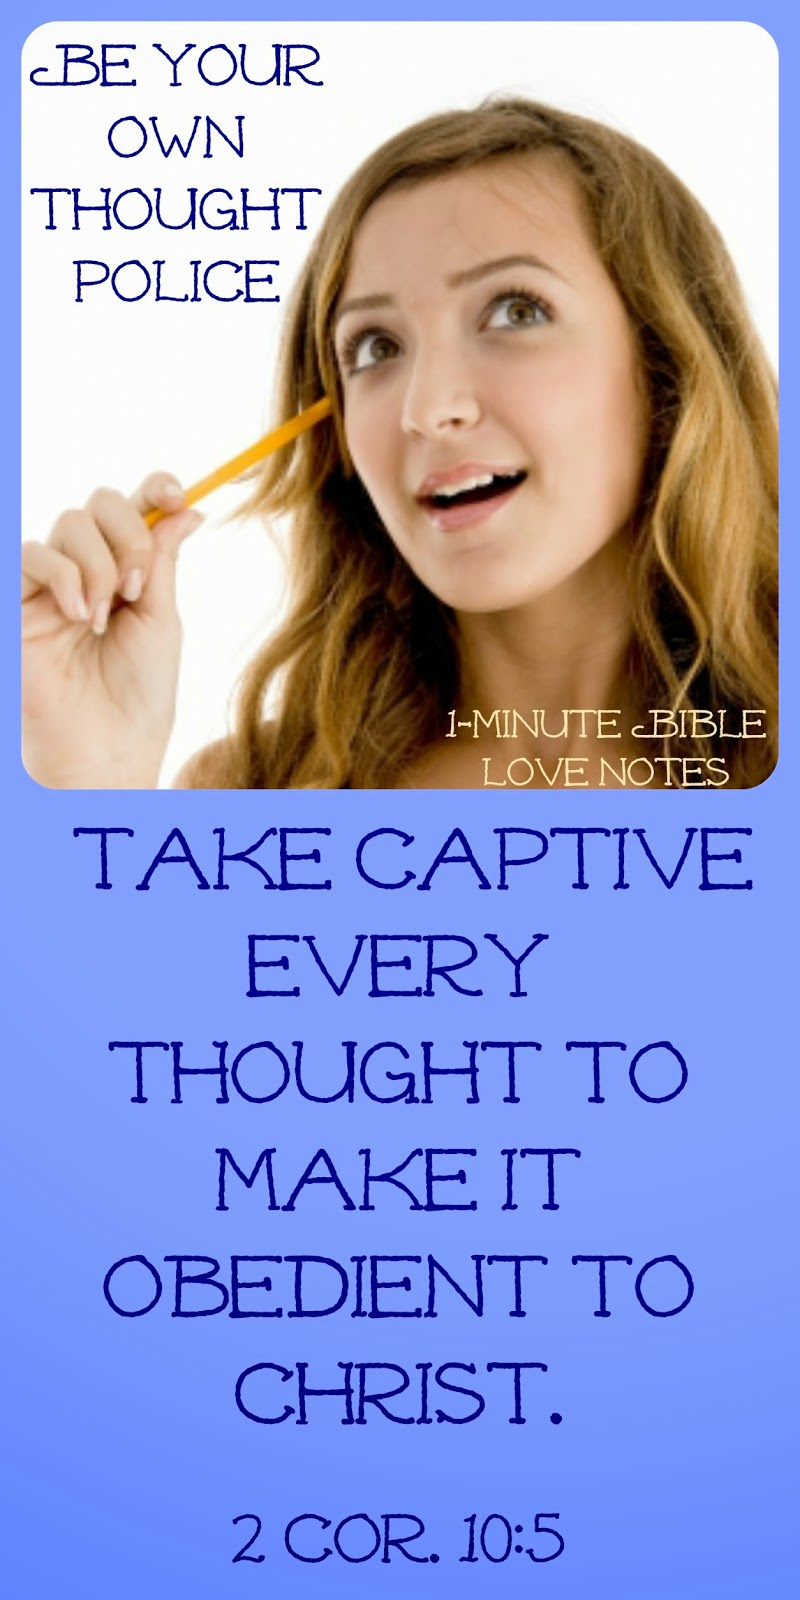 take every thought captive, 2 Cor. 10:5, police your thought life